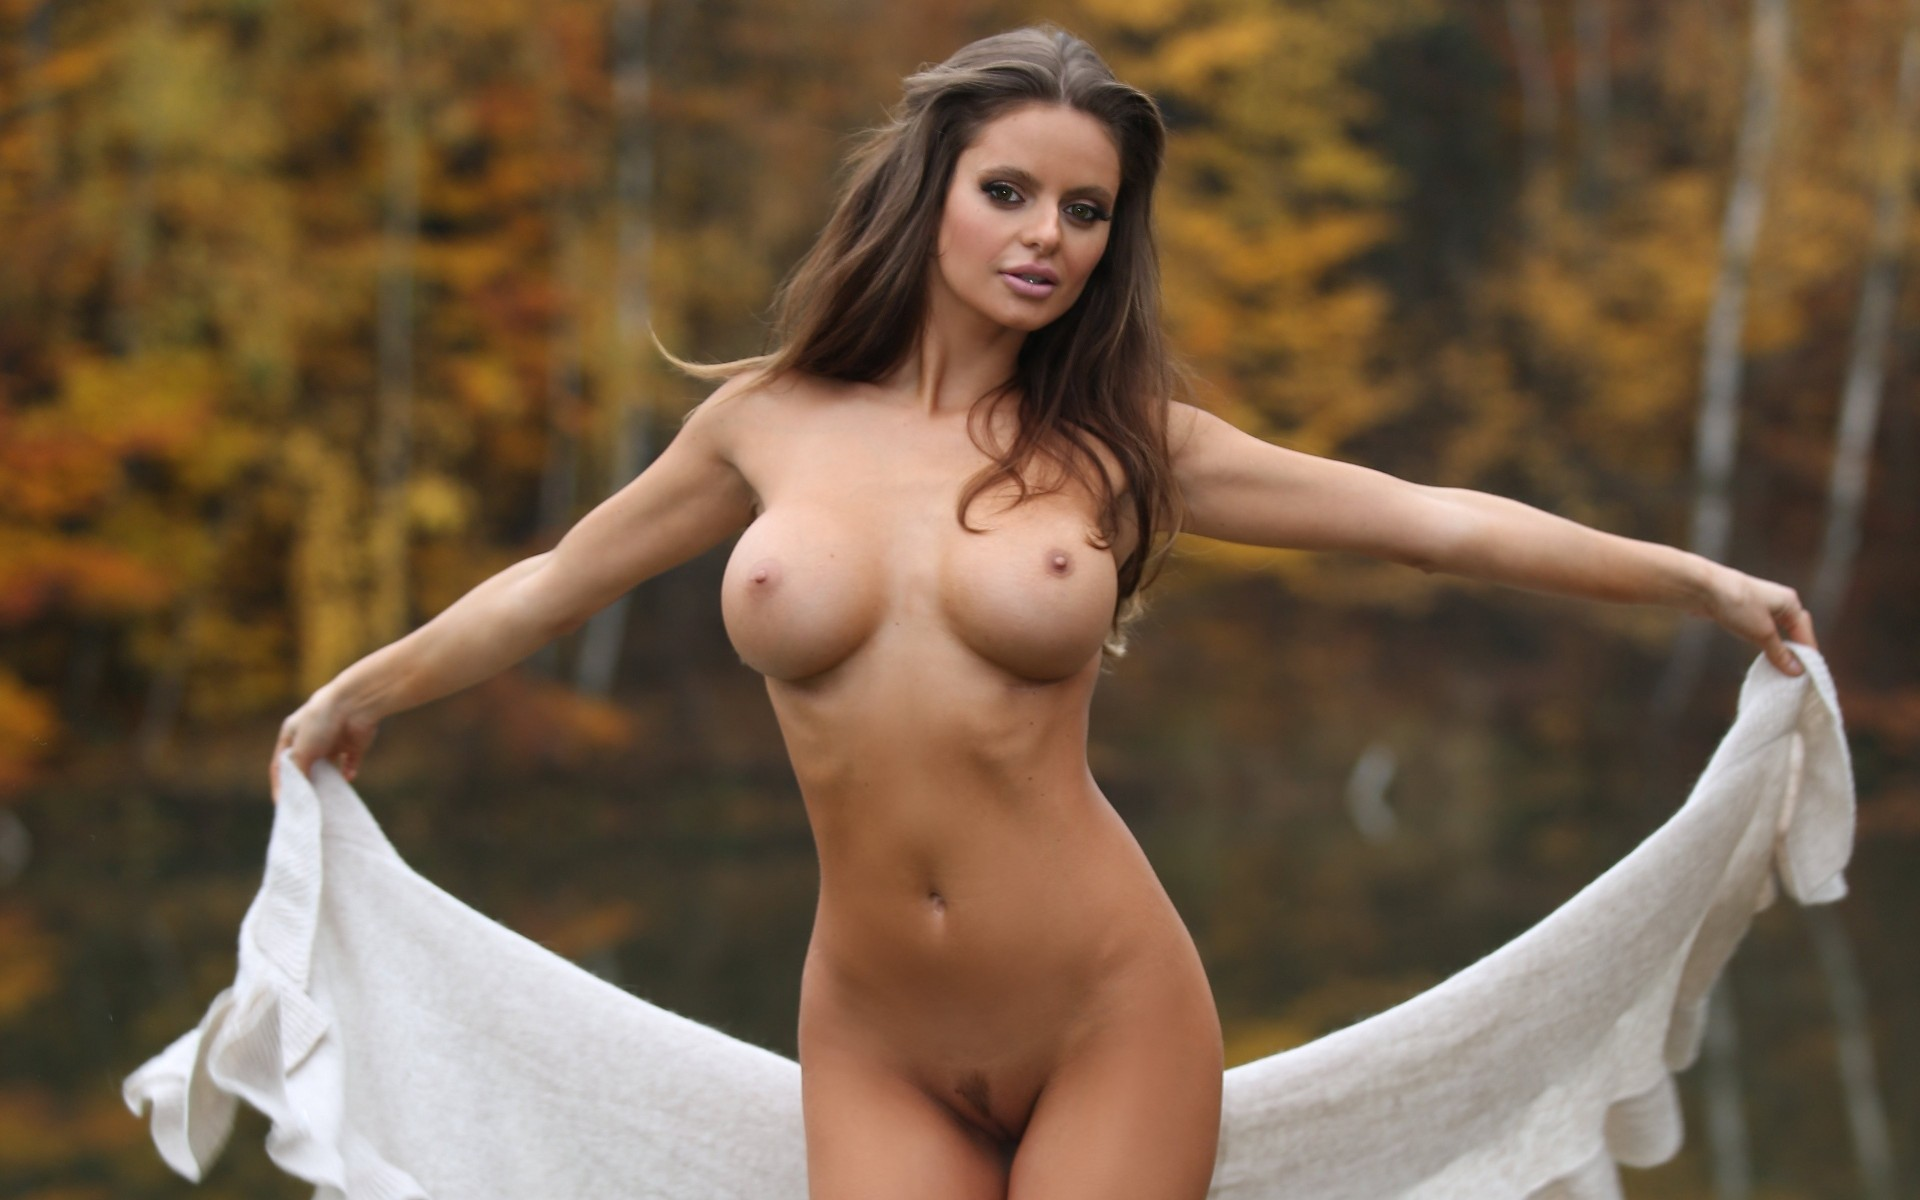 Hd beautiful wife naked photo — pic 1